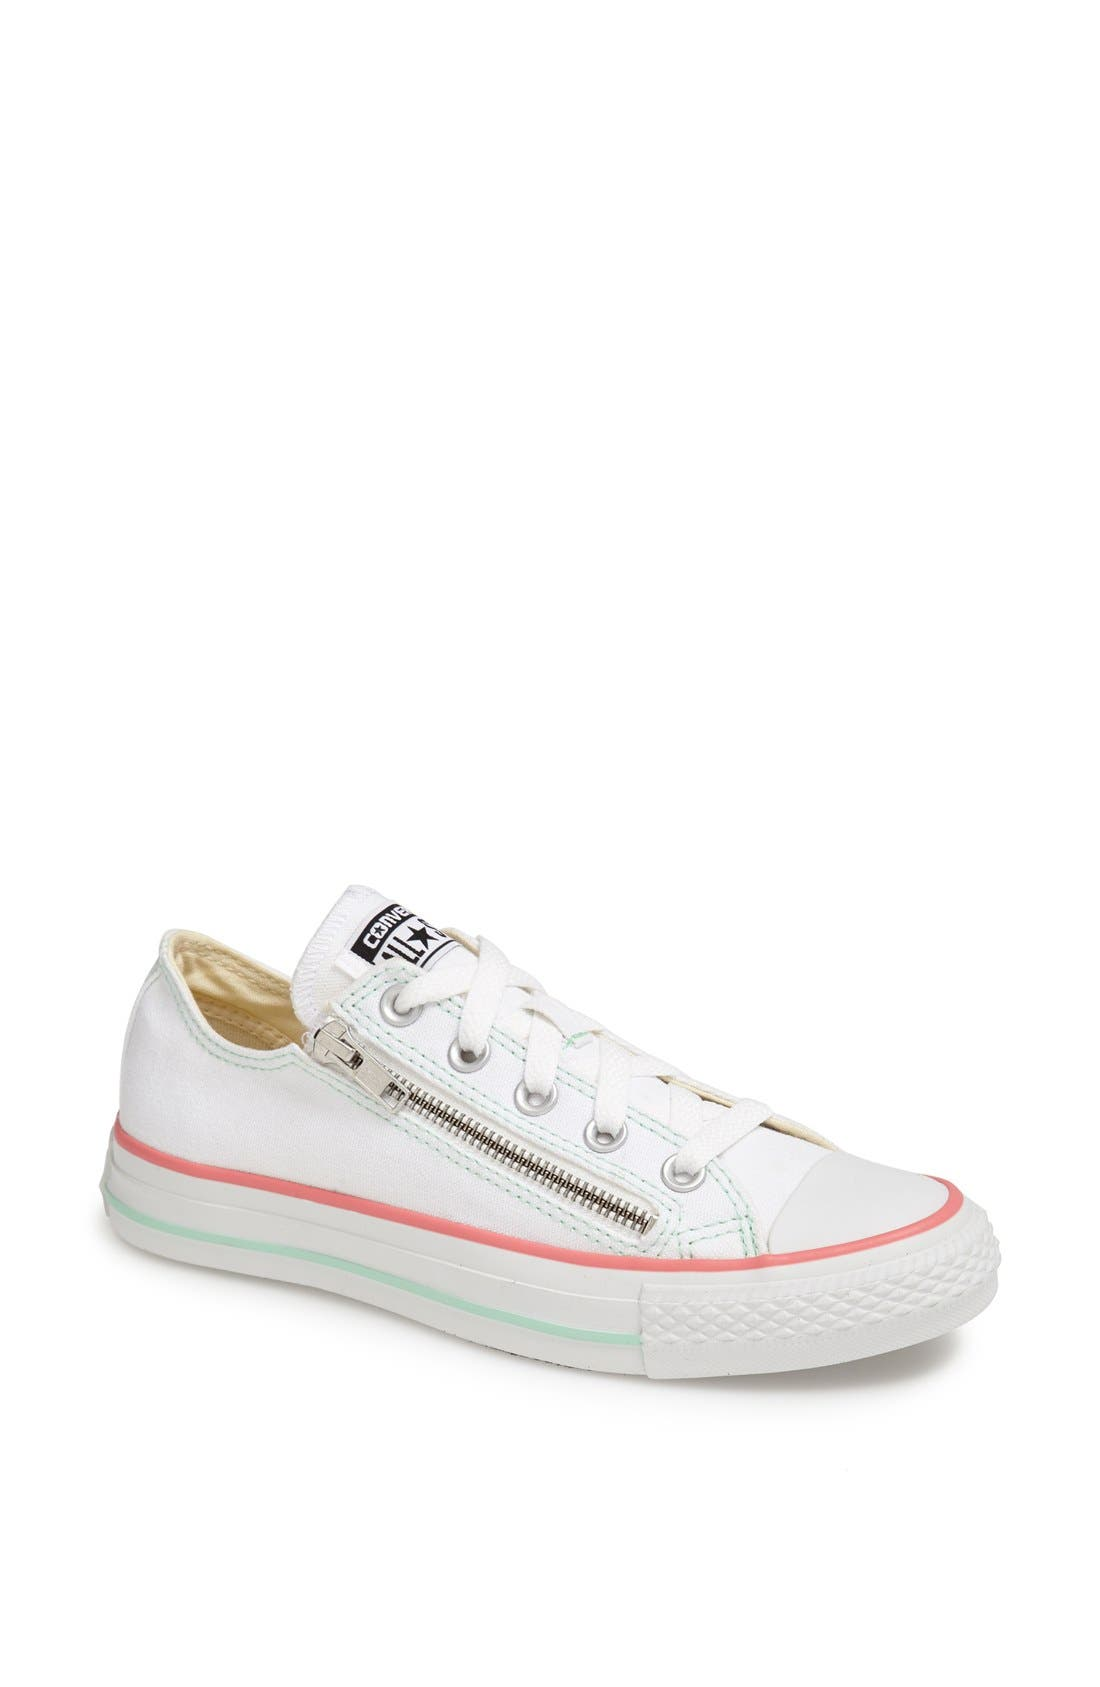 Main Image - Converse Chuck Taylor® All Star® Double Zip Low Sneaker (Women)